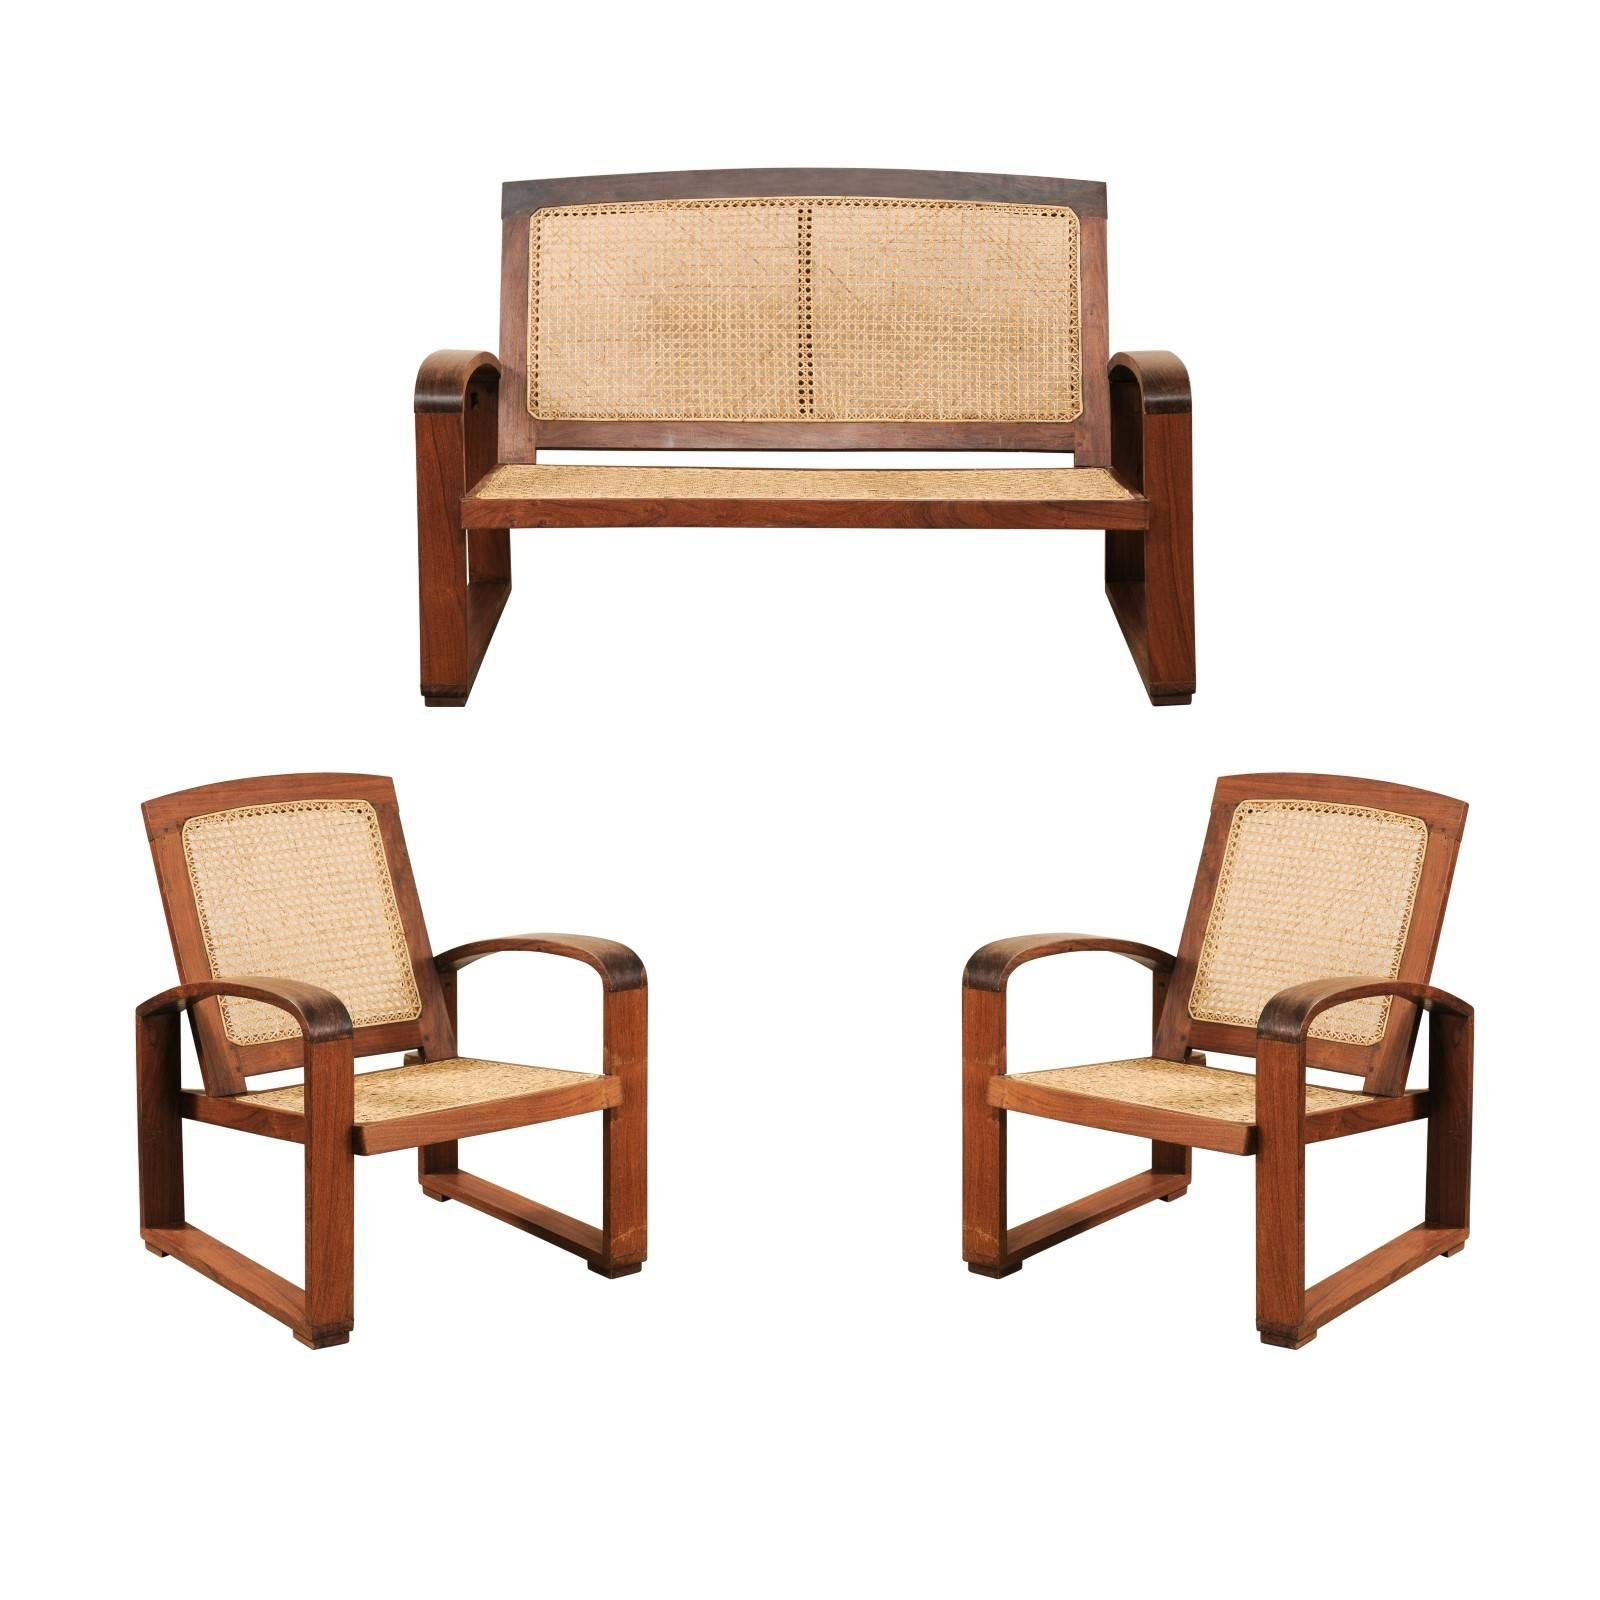 british colonial chair fisher price portable high vintage cane and wood 3 piece seating set with chairs loveseat for